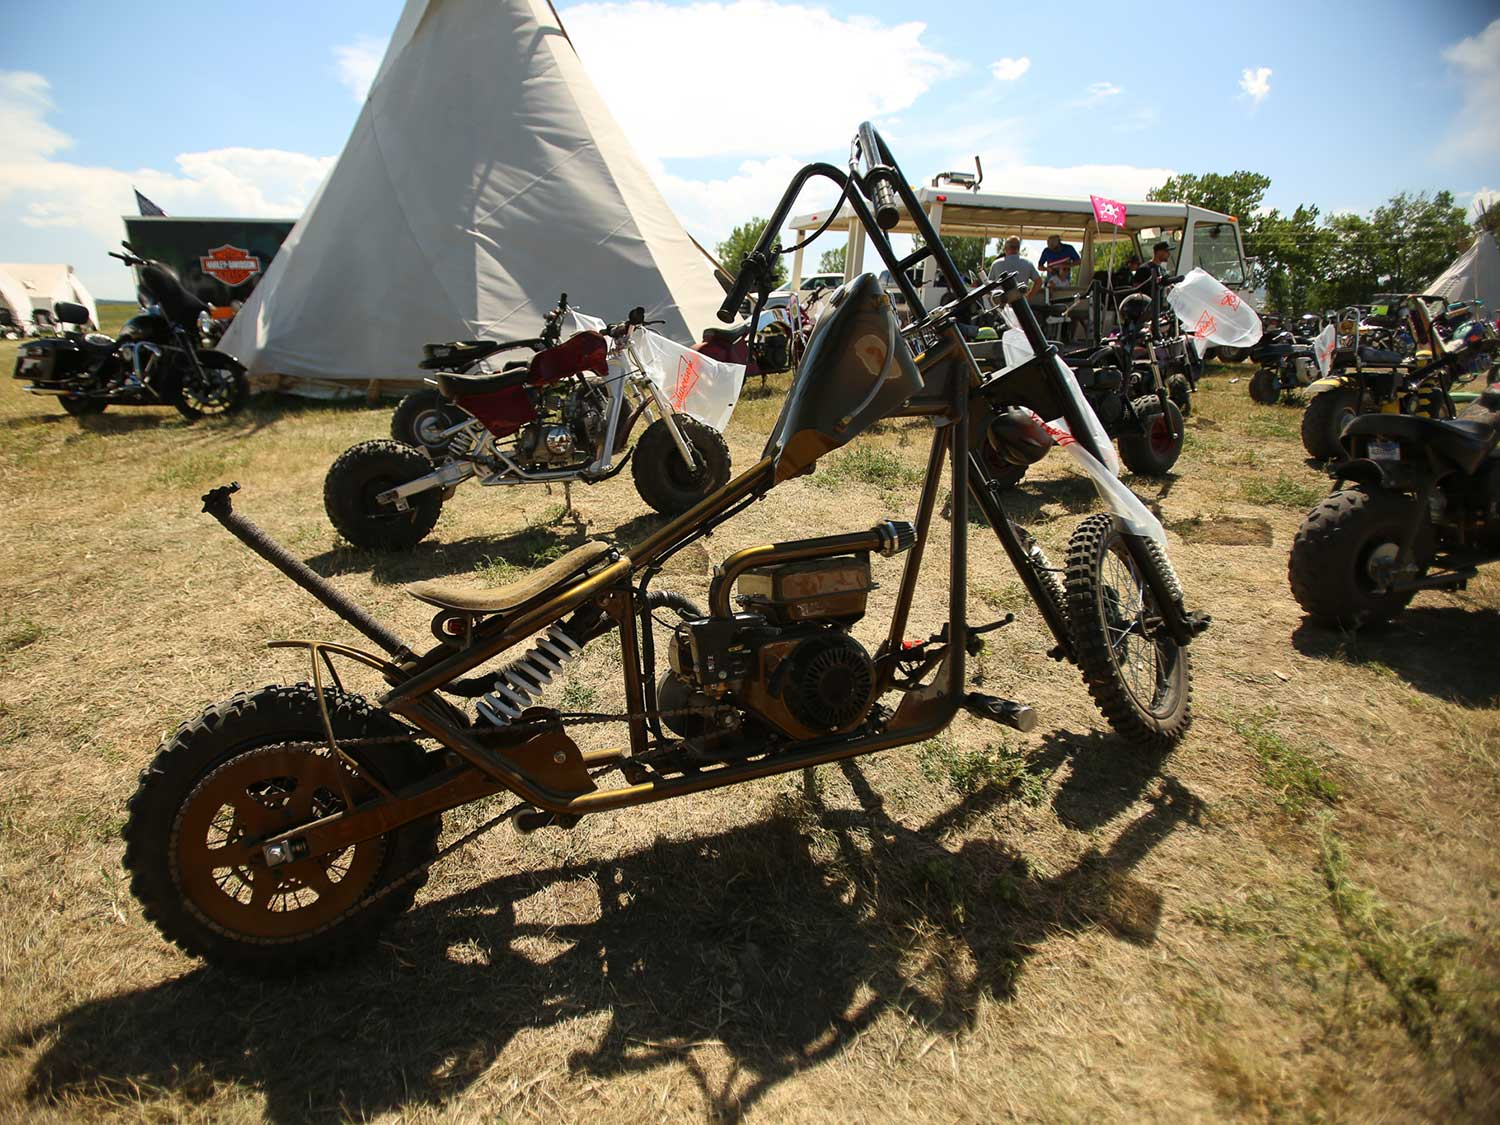 A custom pull-start chopper sits at Camp Zero